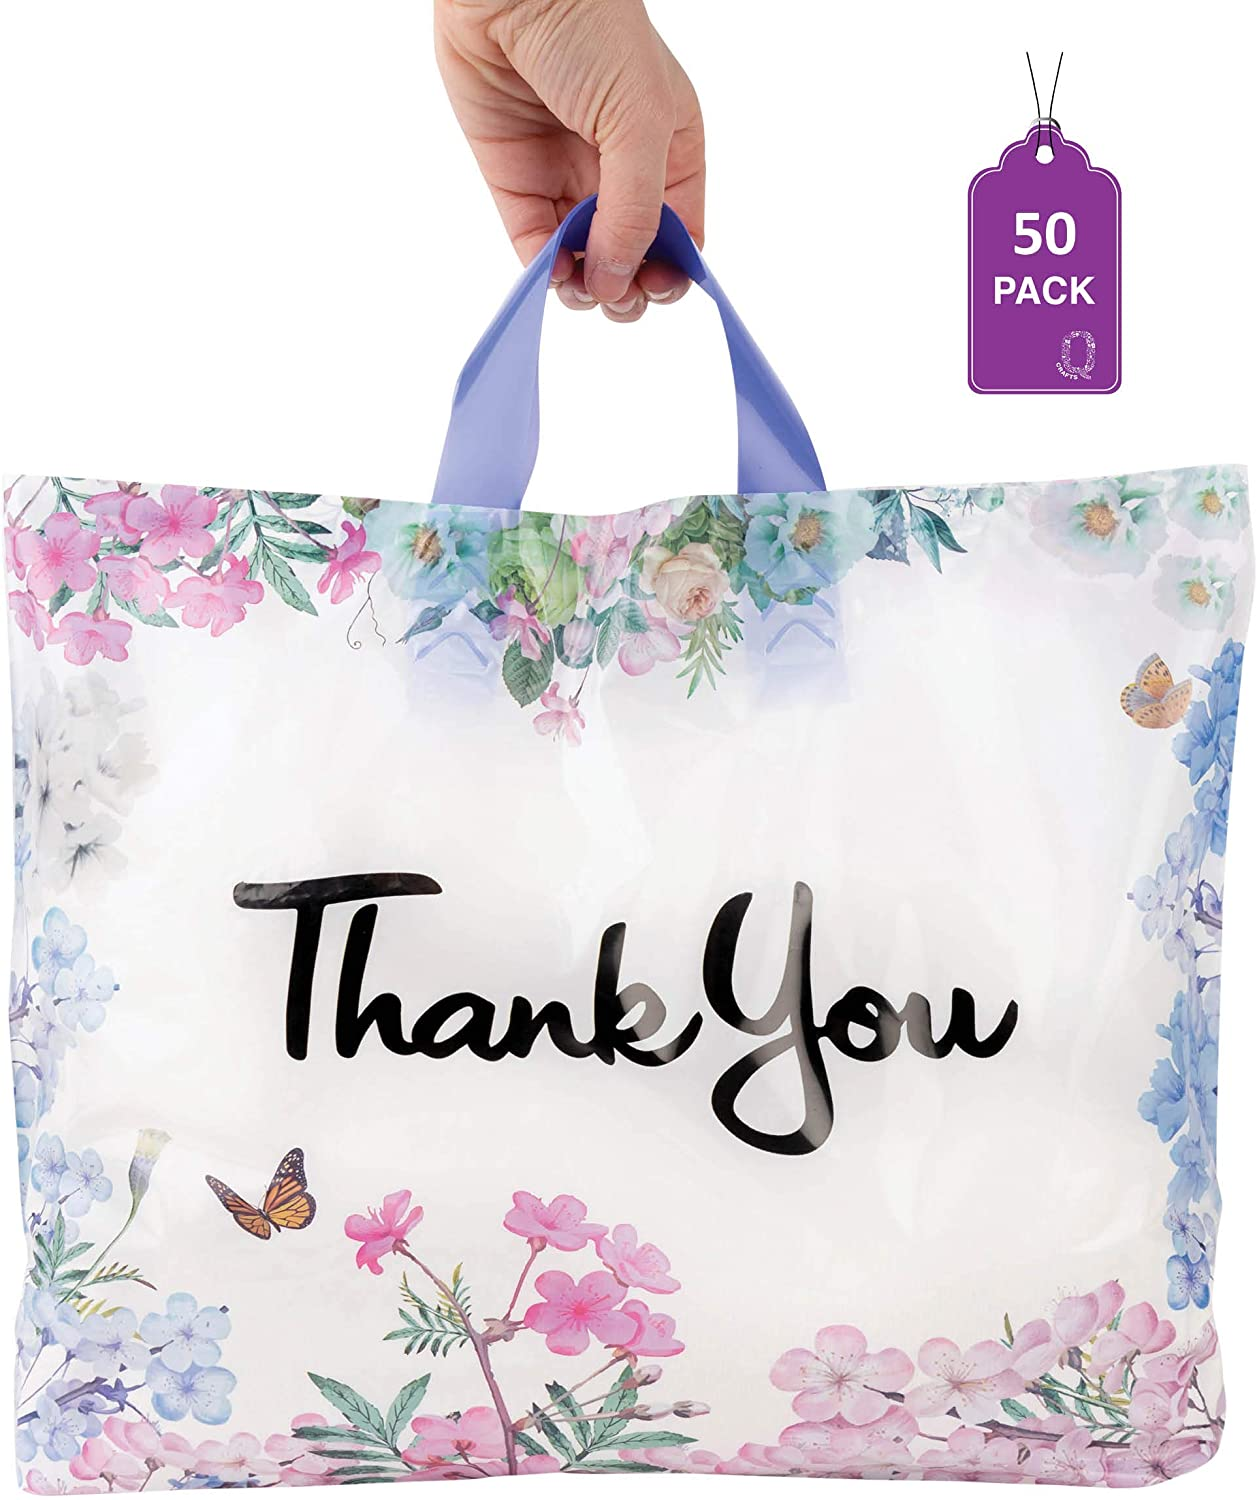 "Floral Thank You Plastic Bags 50 Pack 12"" x 15"" with Soft Loop Handle Thank You Shopping Bags"